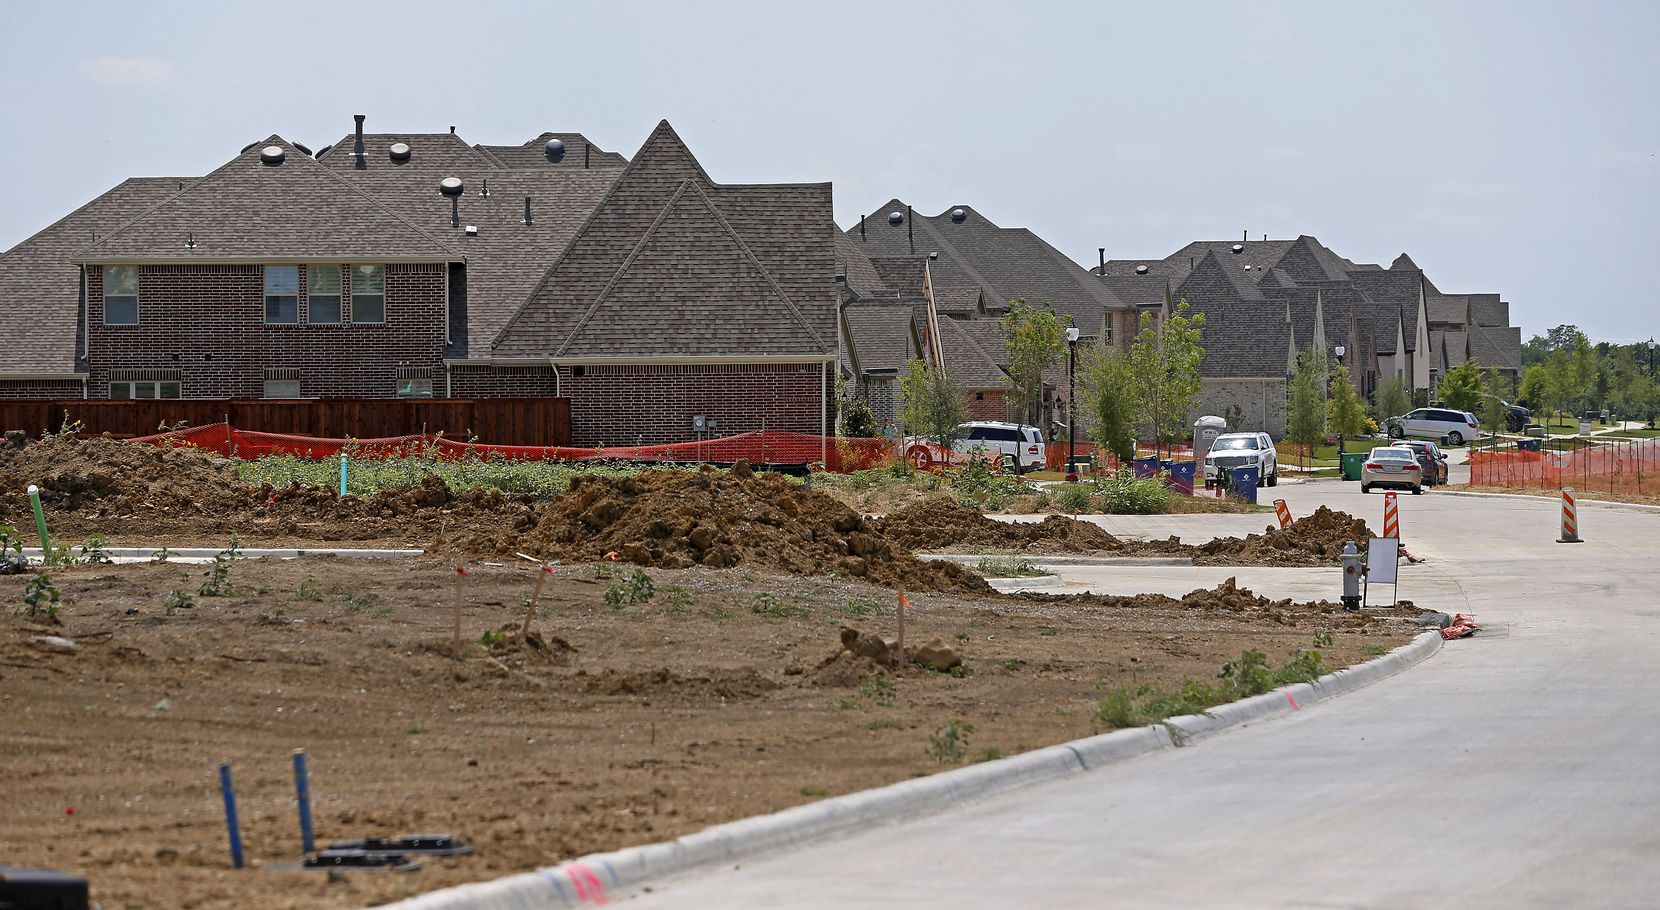 More than 700 homes have been built in Windsong Ranch with plans for more than 3,000.